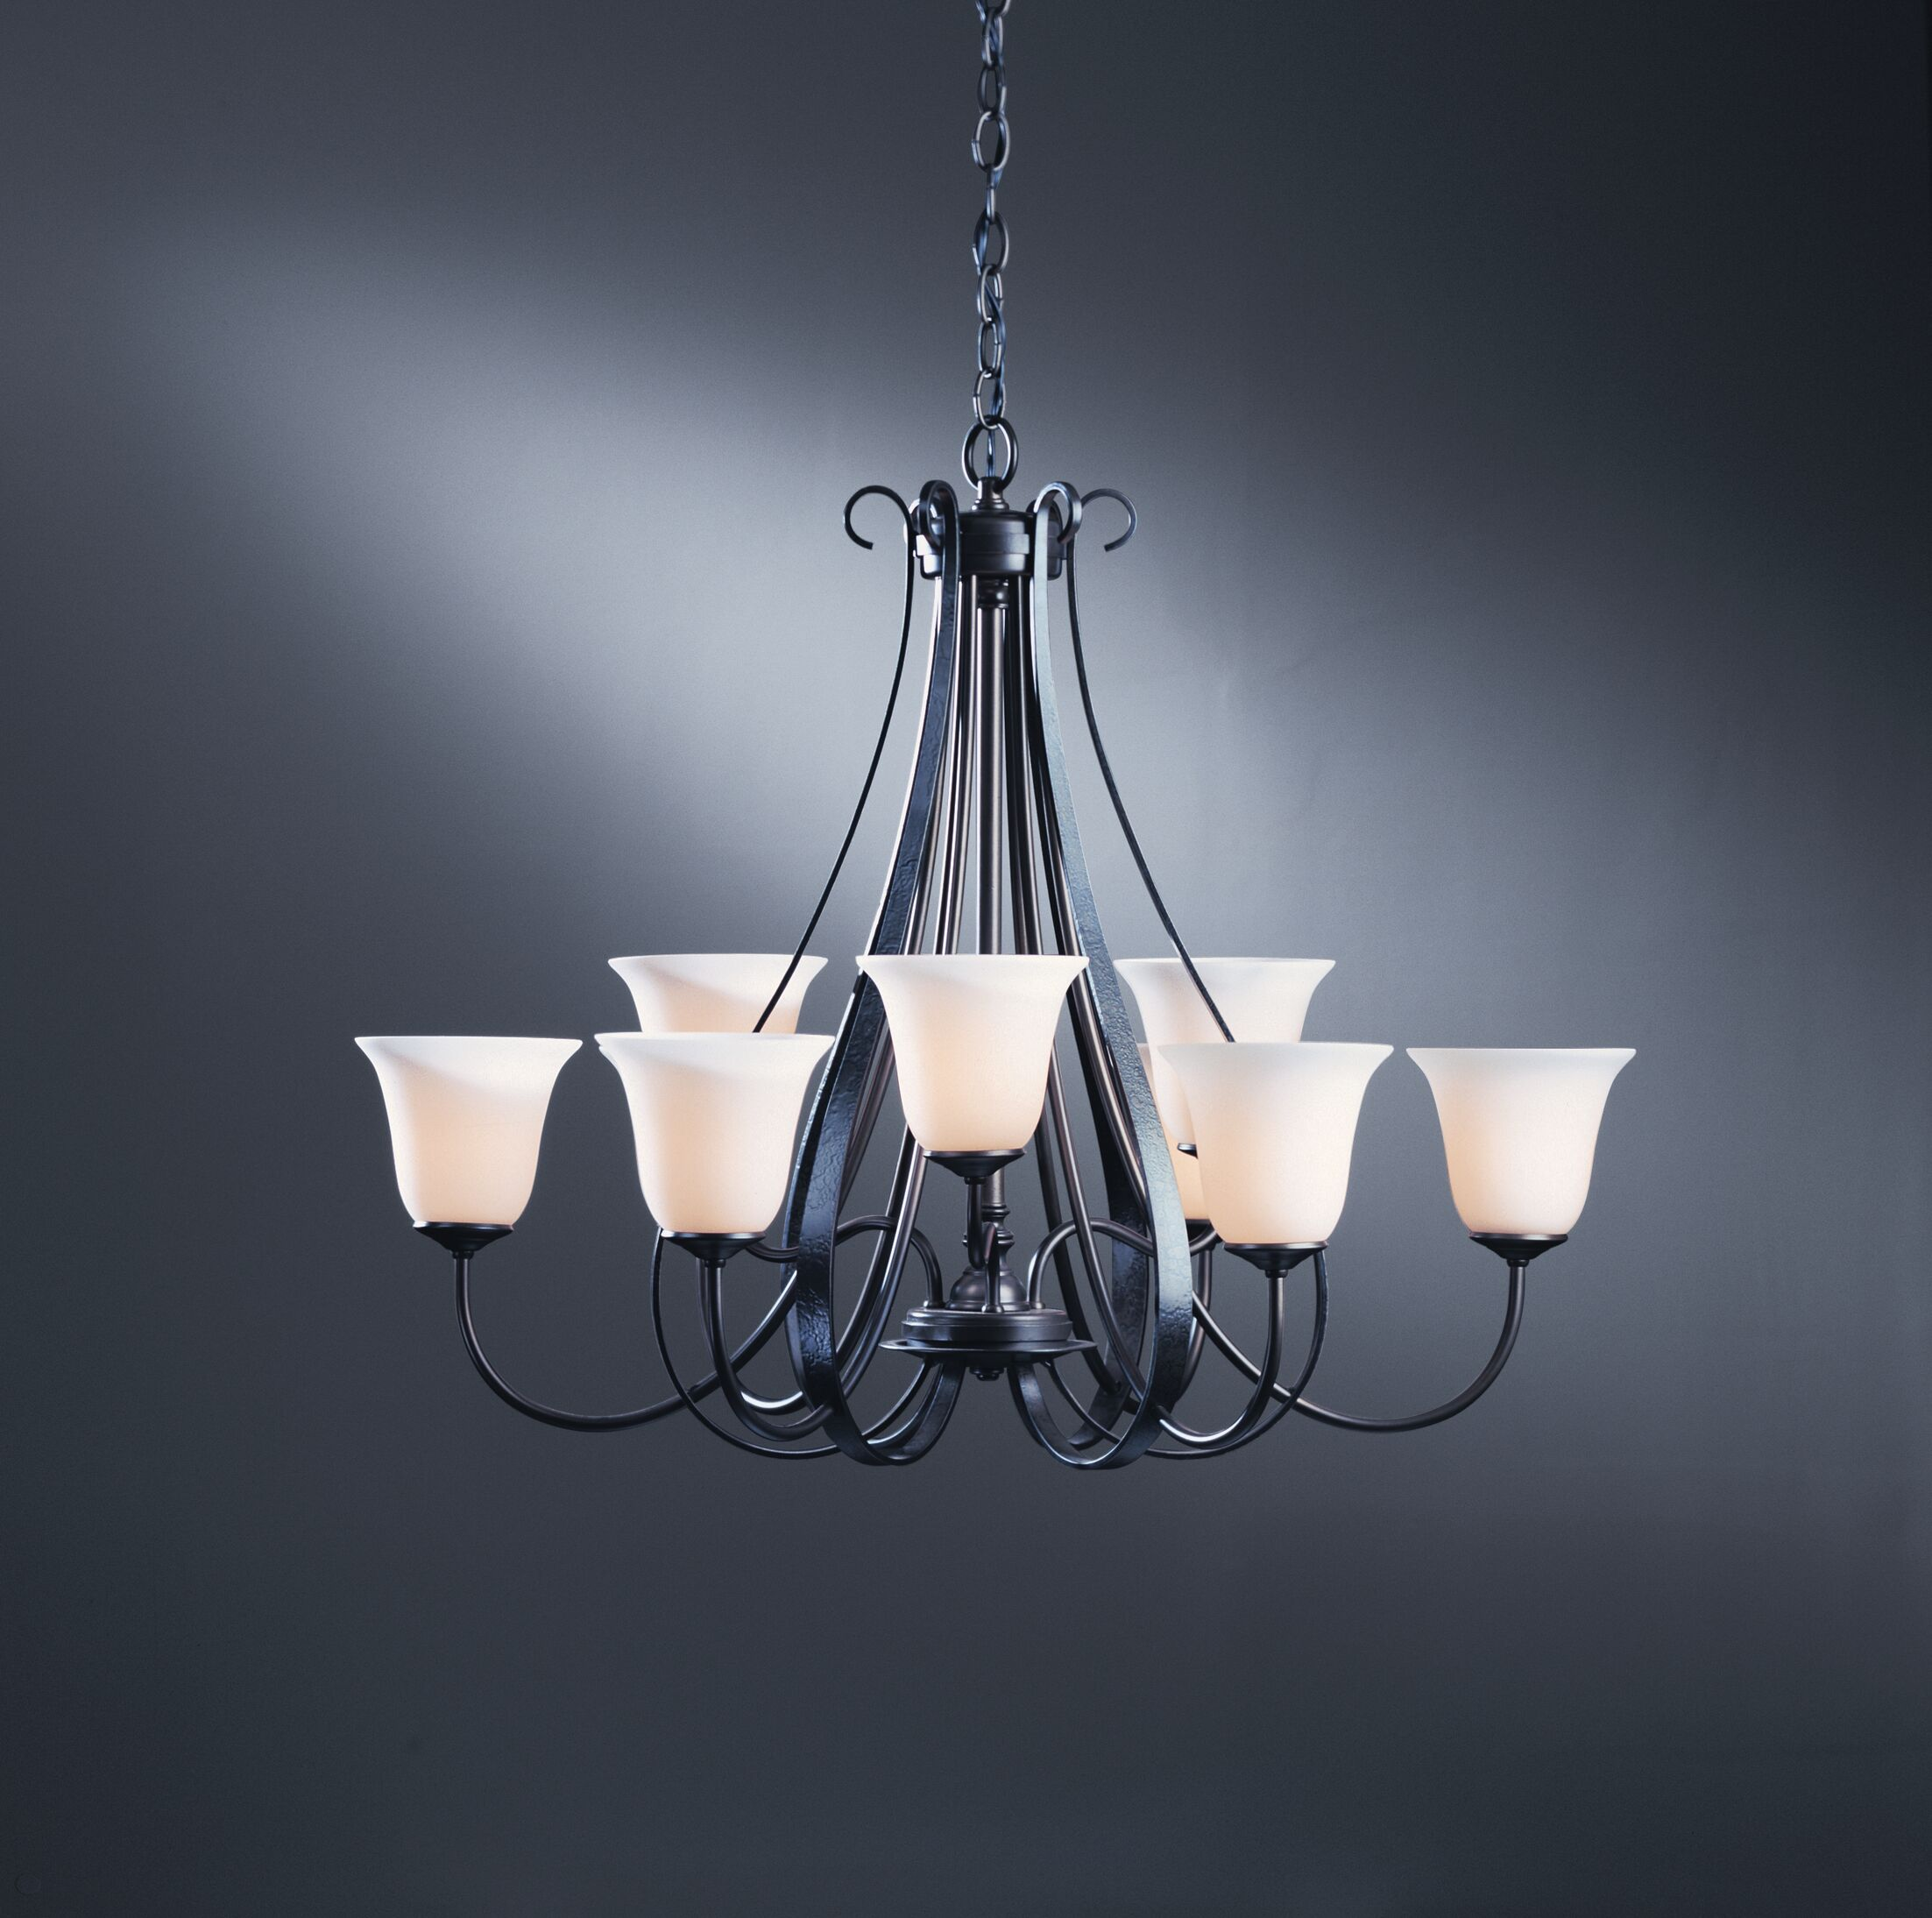 9-Light Shaded Chandelier Finish: Natural lron, Shade Color: Pearl